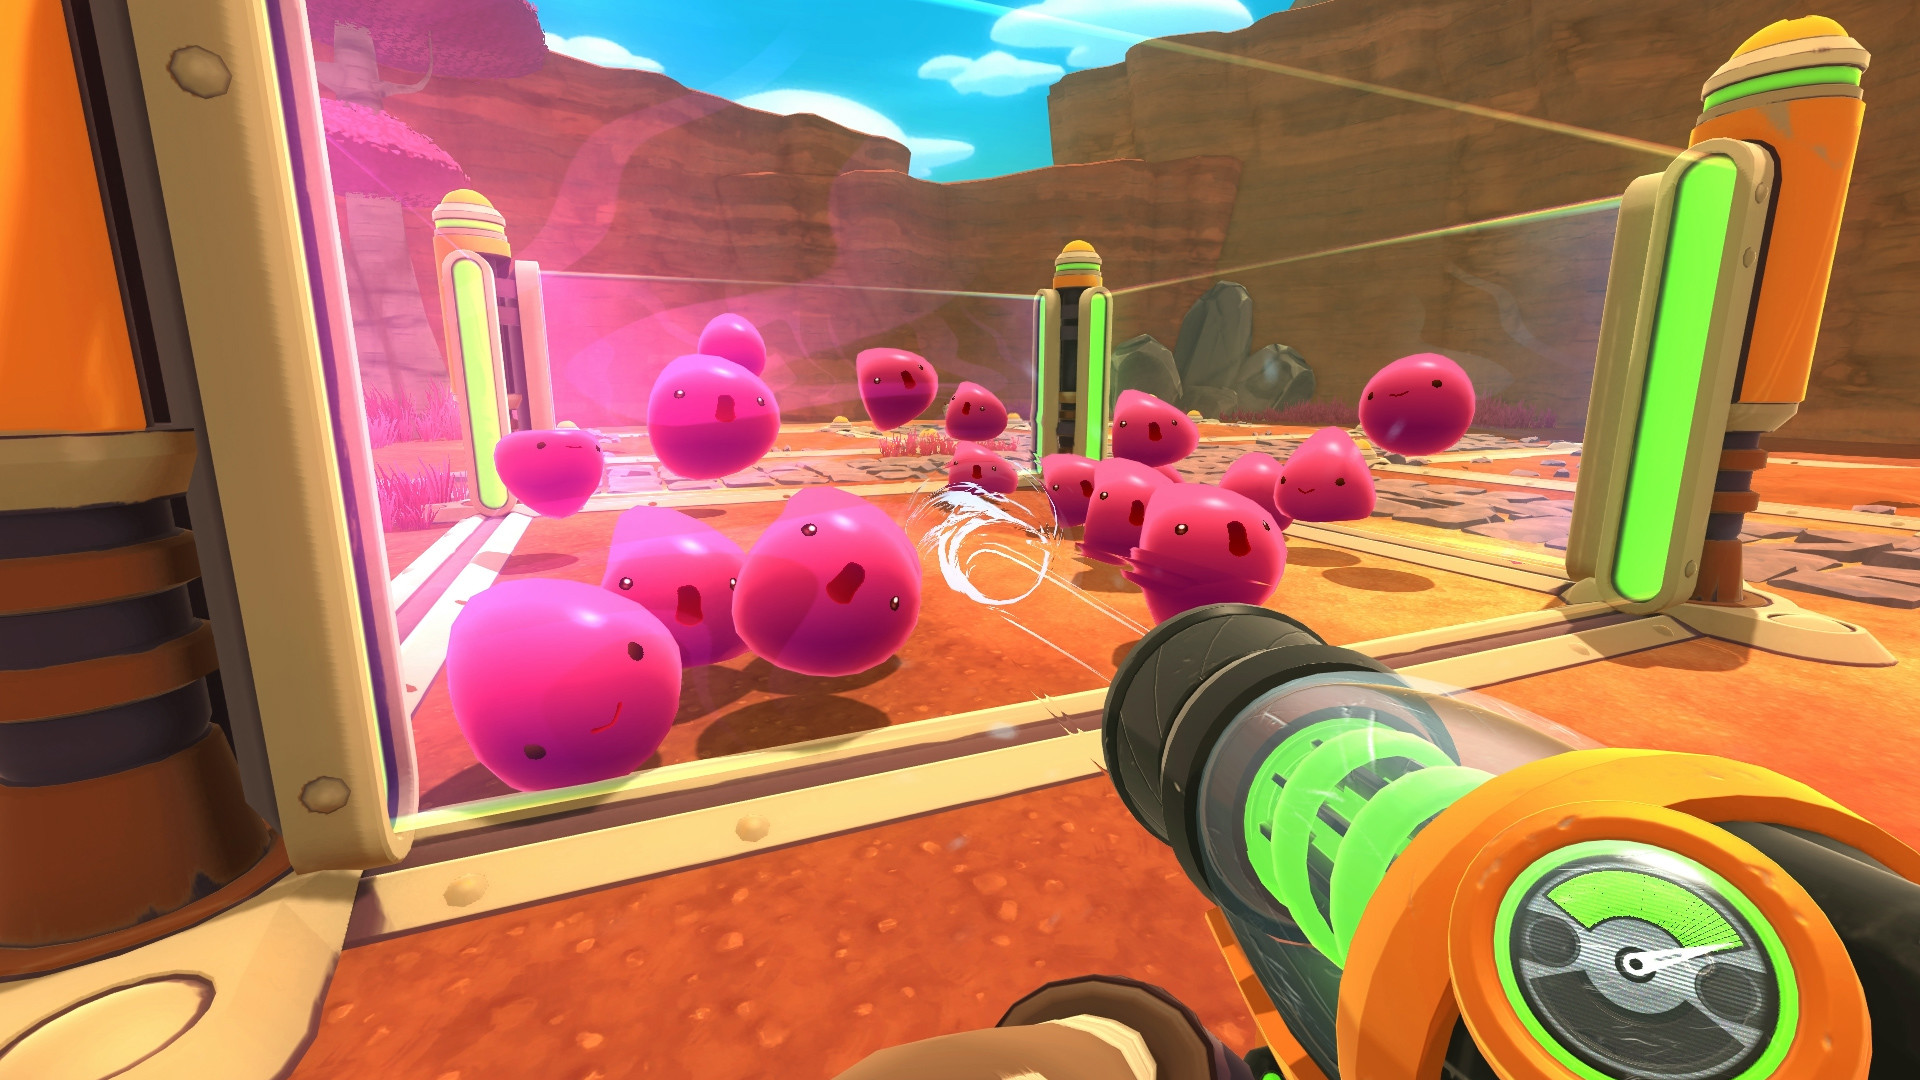 Slime Rancher: the Xbox One X Enhanced game you probably